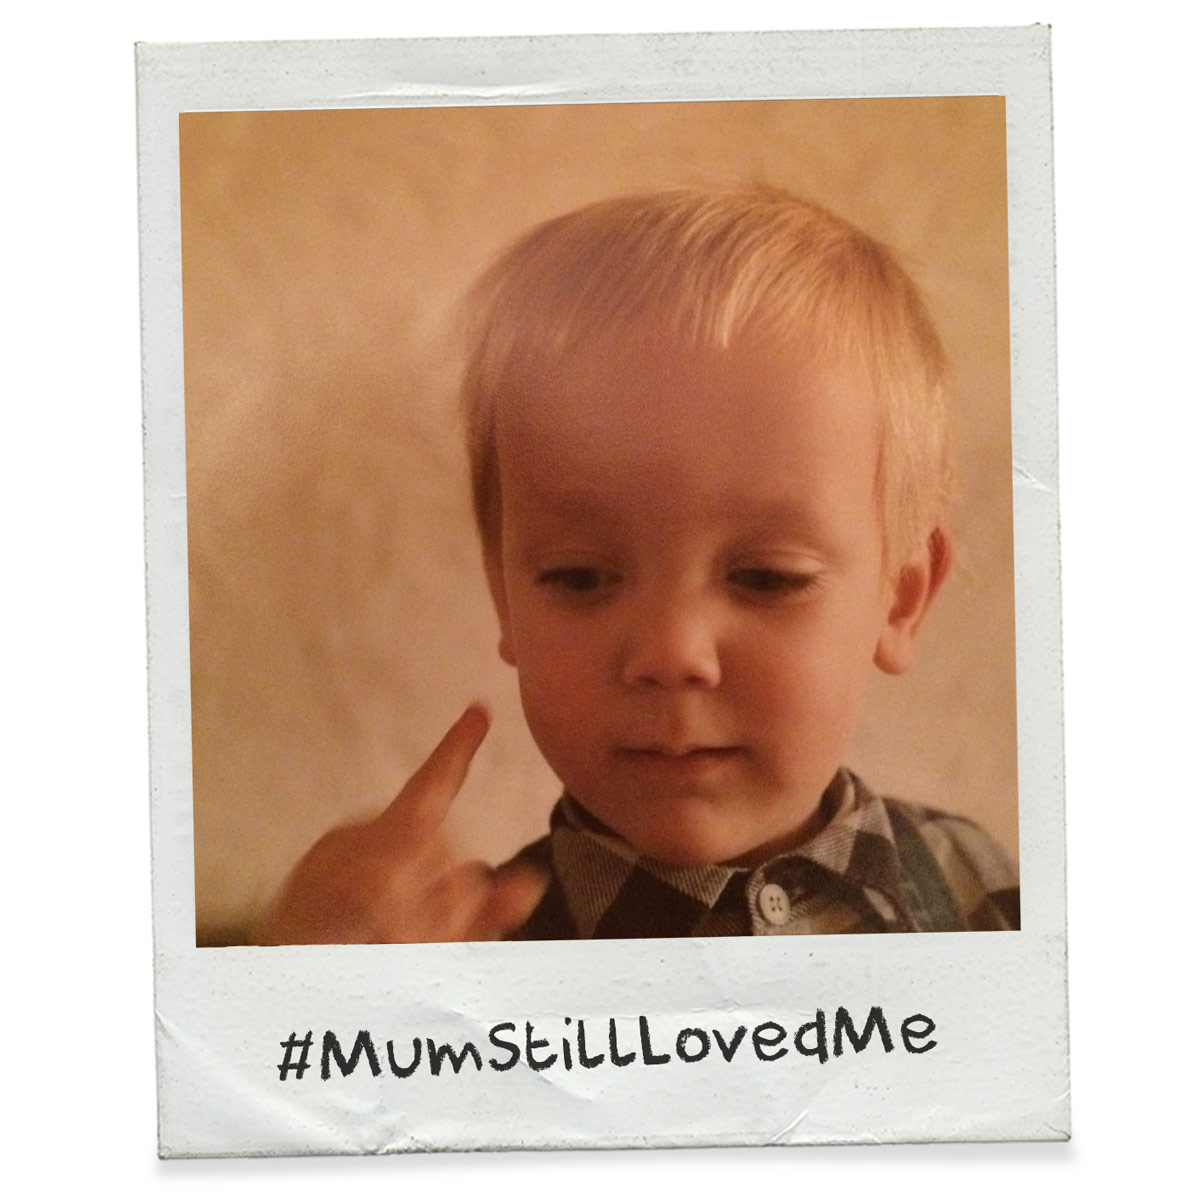 Mum Still Loved Me #5